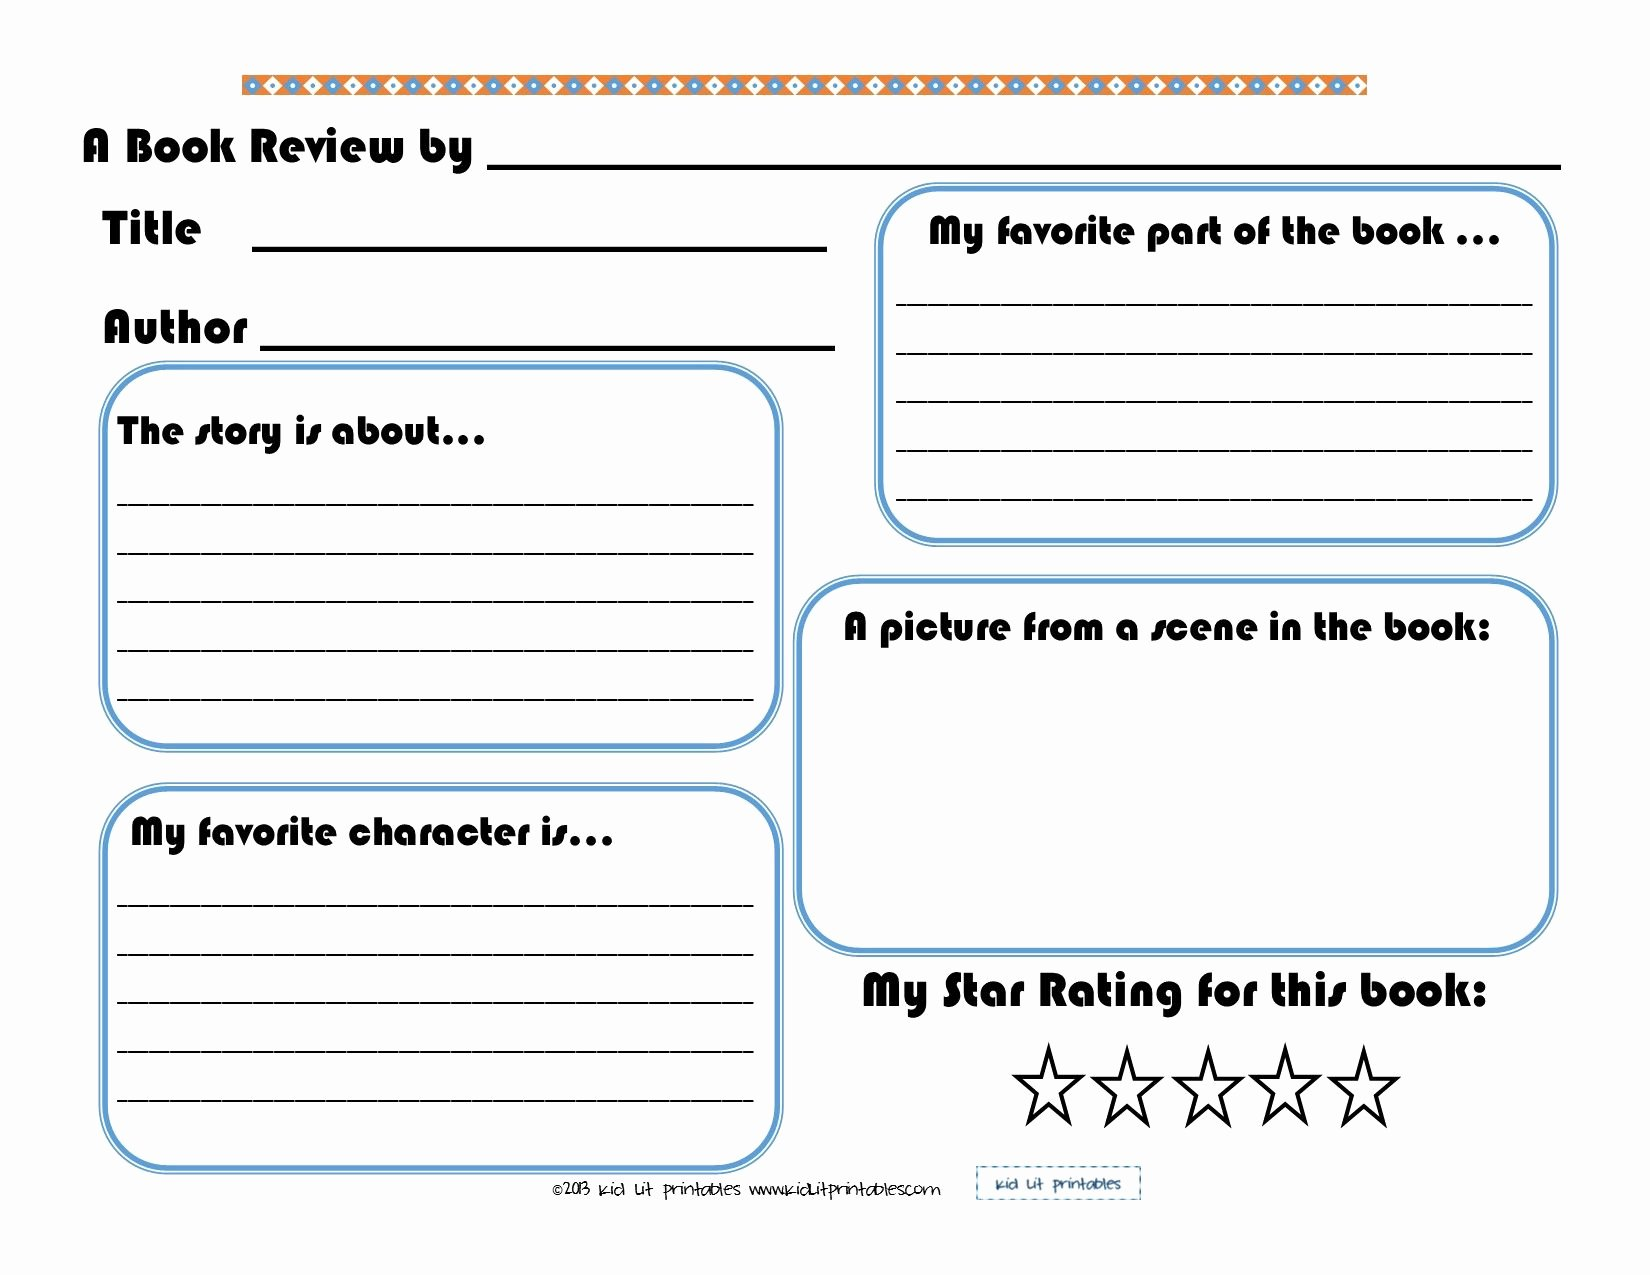 Printable Book Report forms New 3 Levels Of Free Printable Book Reports From Kid Lit